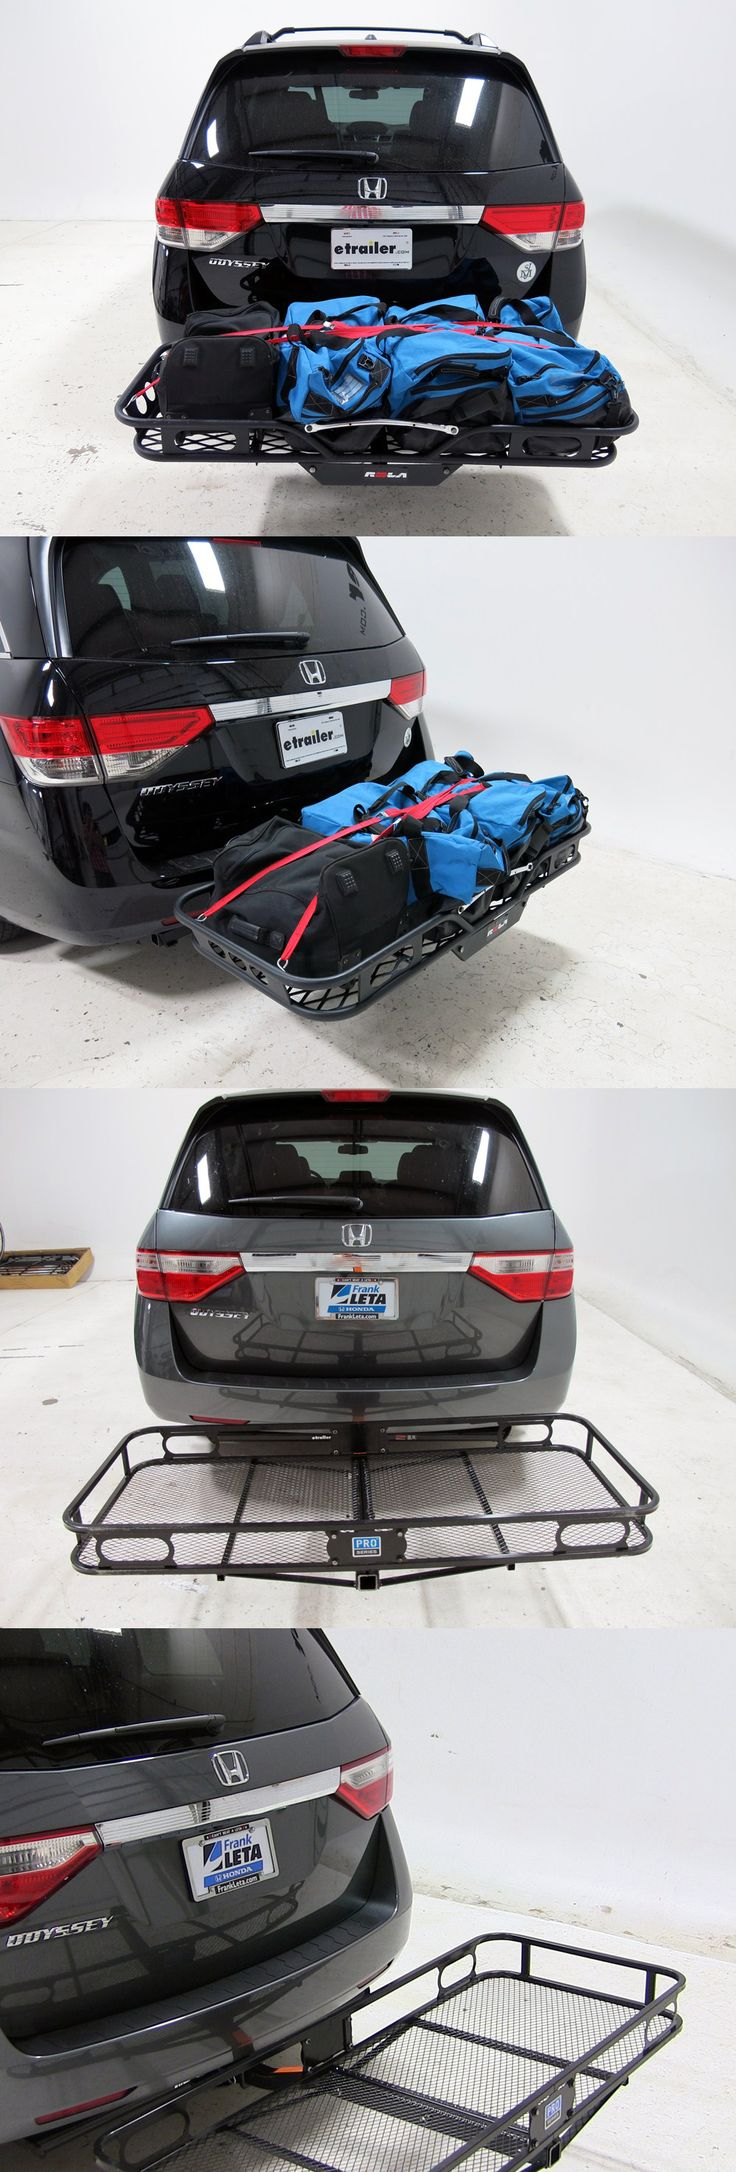 Top 20 best cargo carriers for the Honda Odyssey - check out installation videos and read reviews for the top rated carriers based on performance sturdiness and functionality! All are great for camping, hiking and fishing gear storage while traveling!  http://www.etrailer.com/partlist.aspx?vmake=Honda&vmodel=Odyssey&productgroup=Cargo%20Carriers